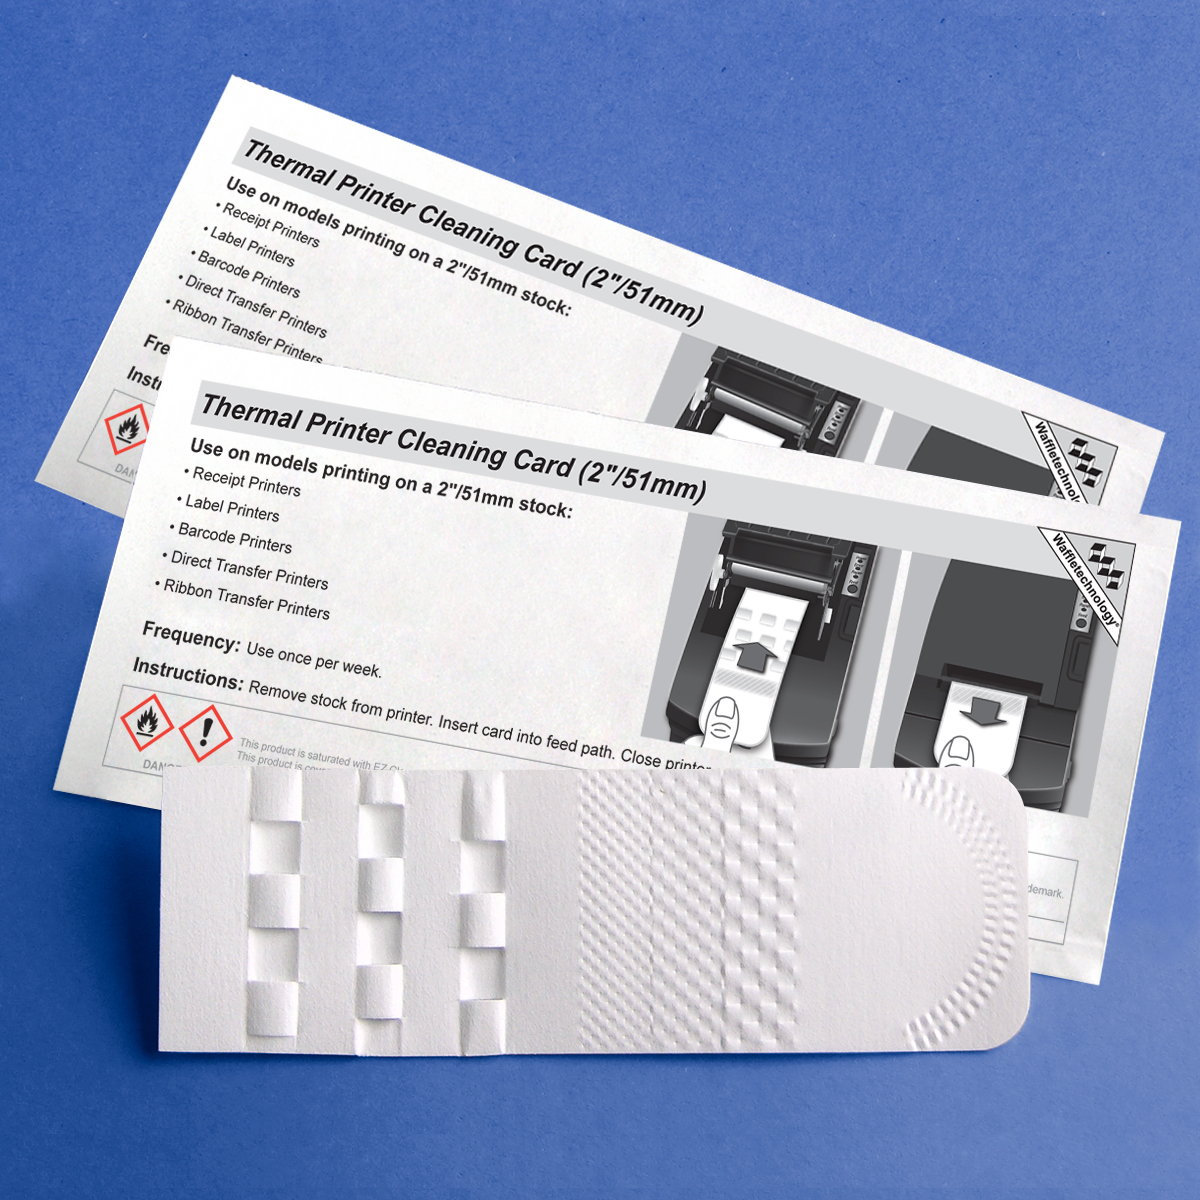 Thermal Printer Cleaning Card featuring Waffletechnology® (2in/51mm)